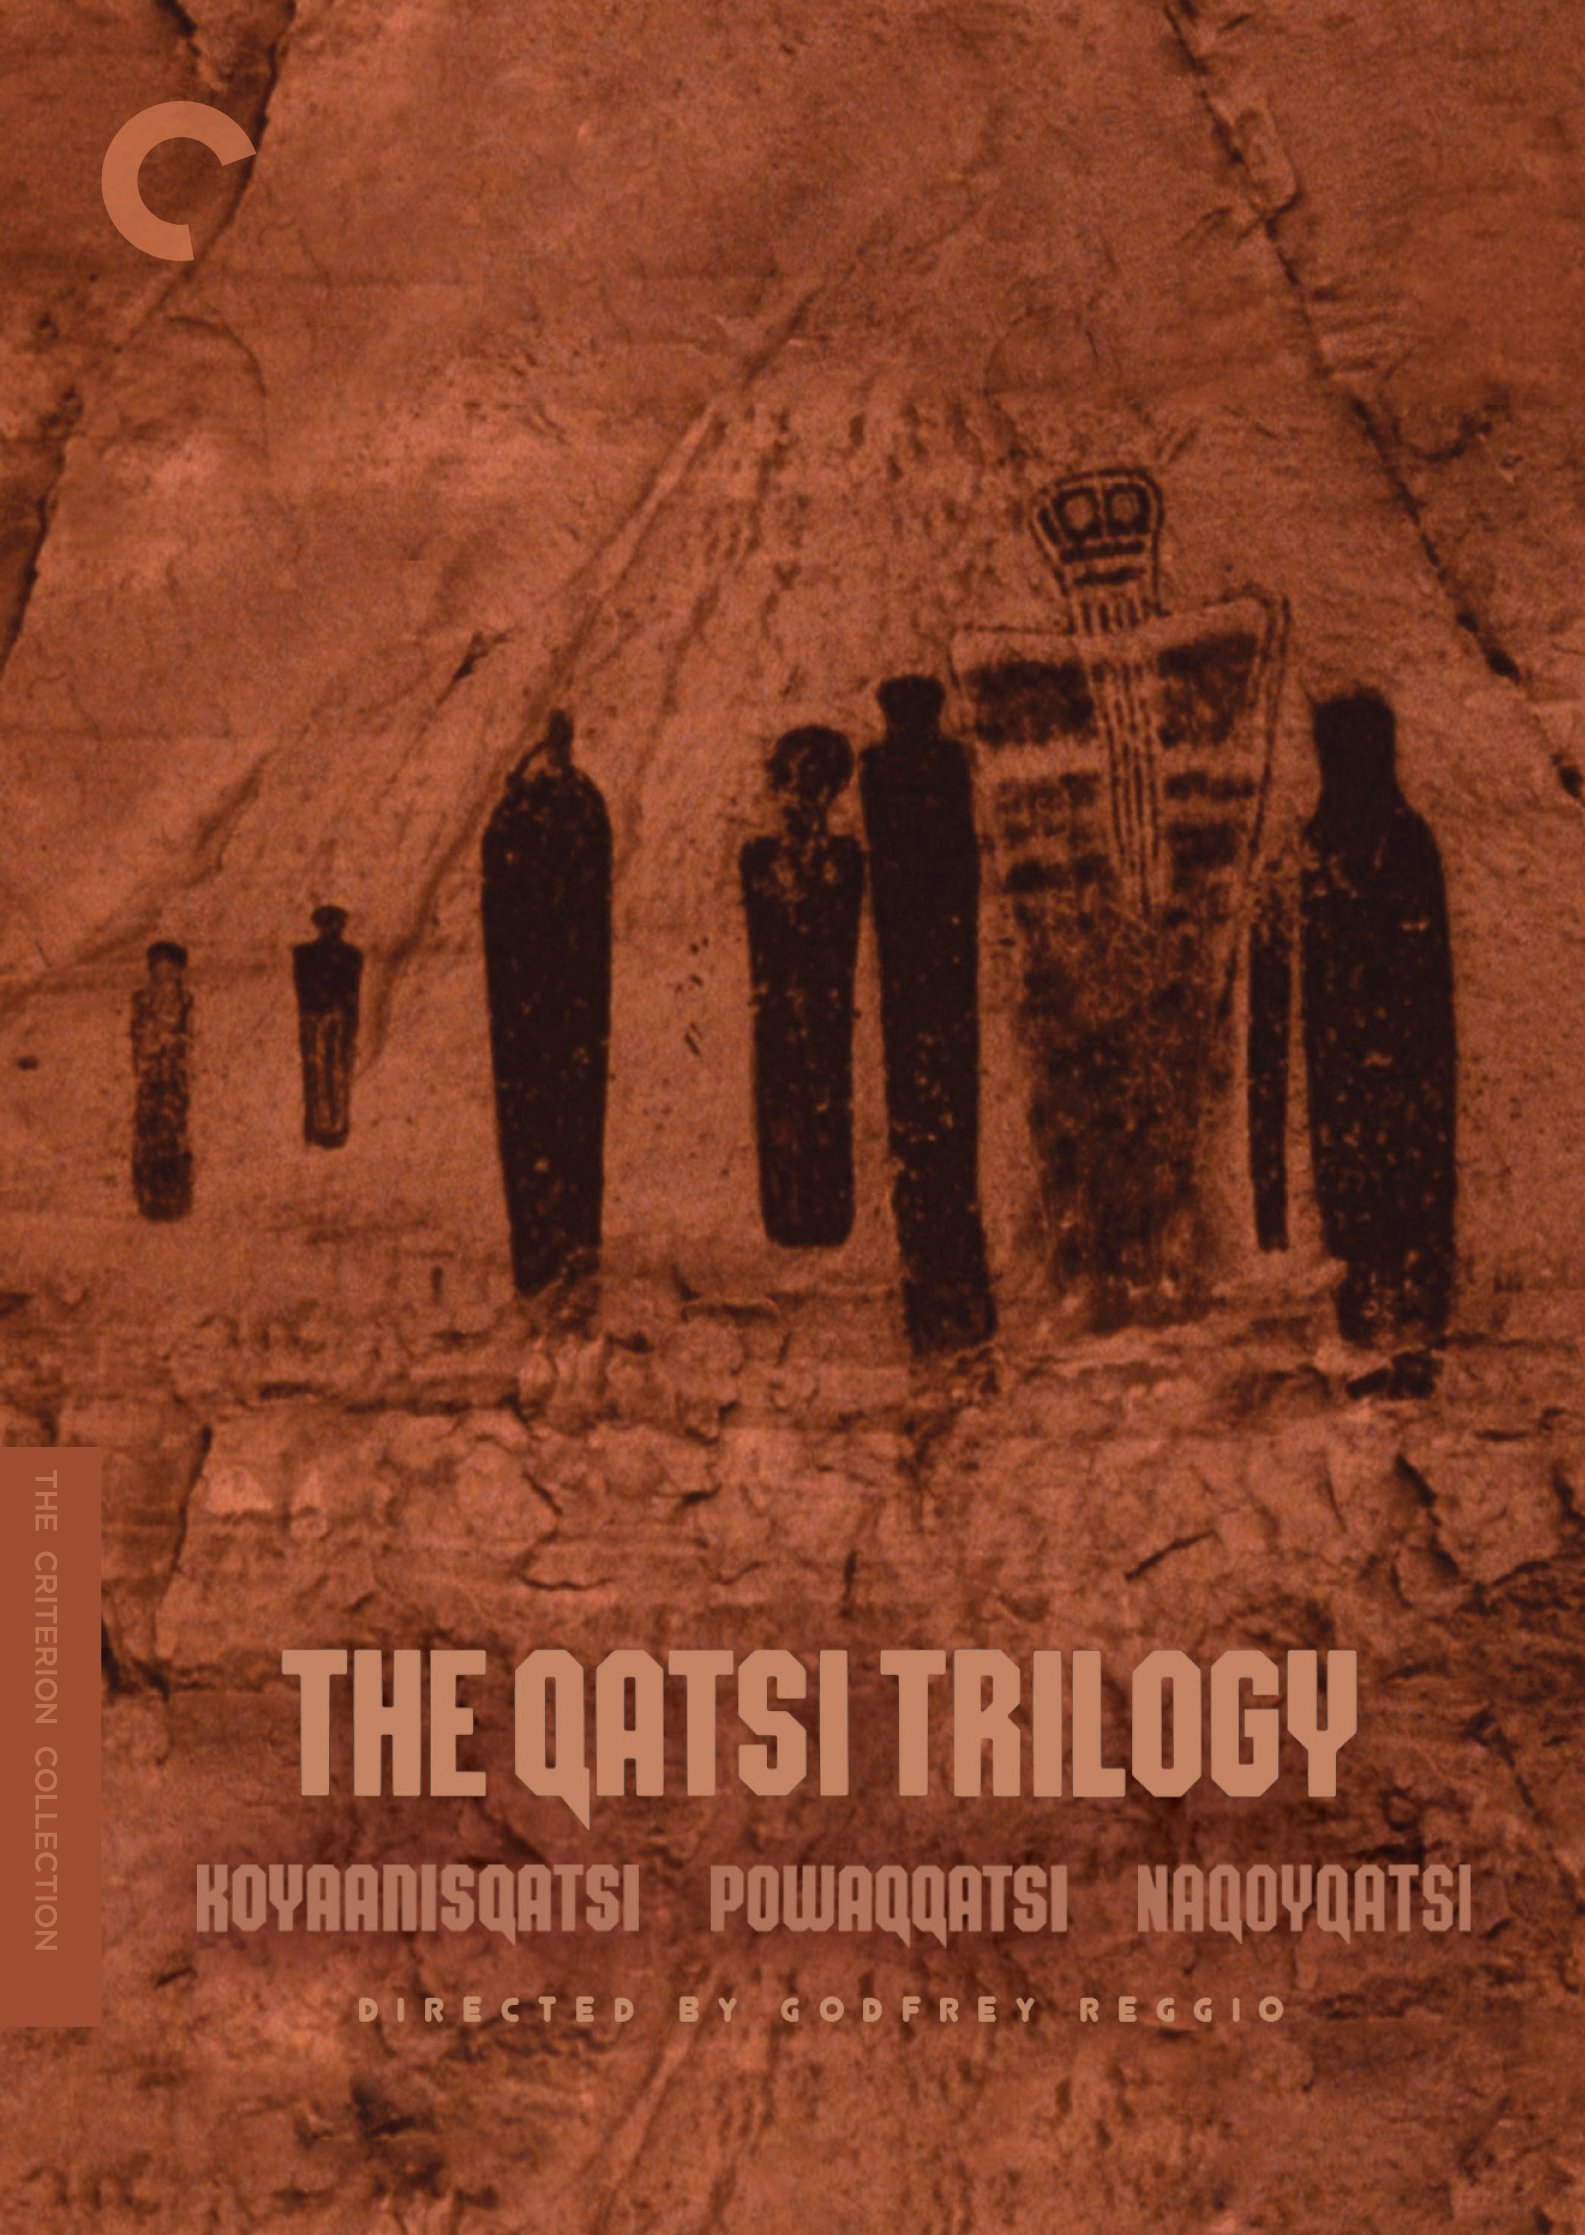 DVD : The Qatsi Trilogy (Criterion Collection) (Widescreen, Dolby, 3 Disc)